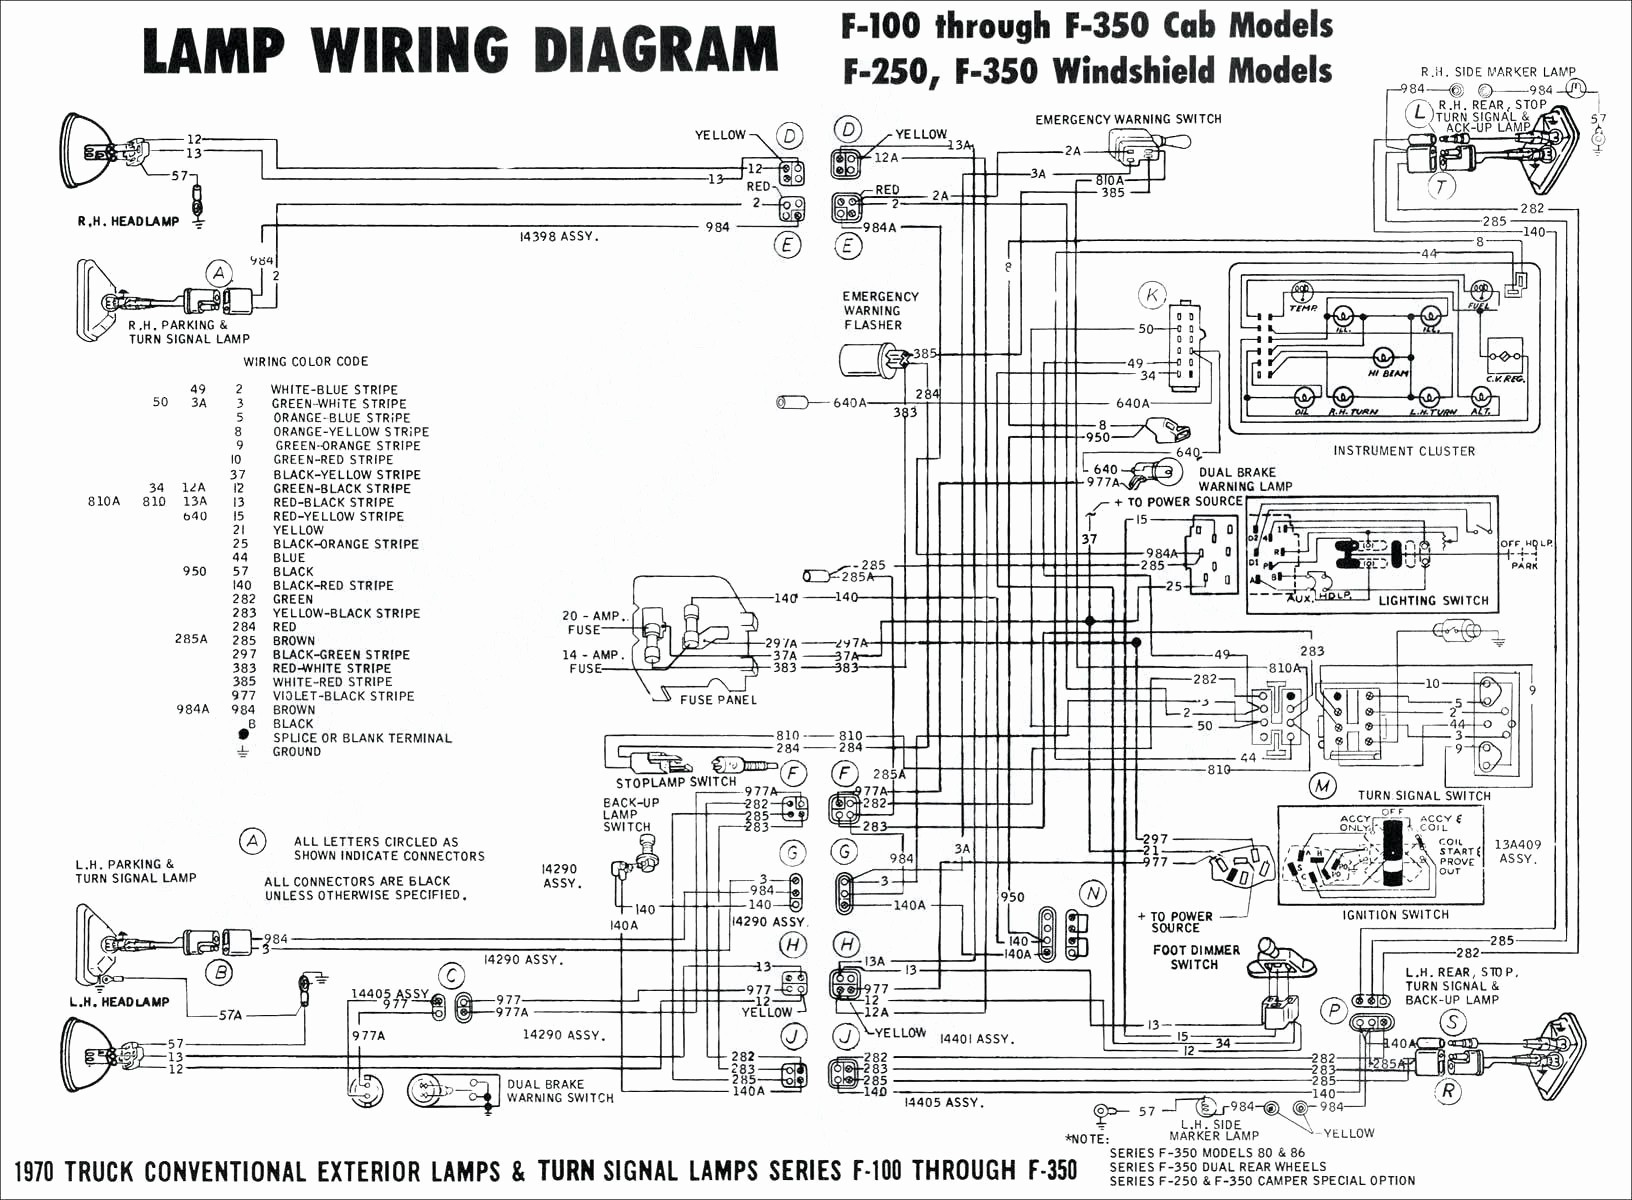 57 chevy headlight switch diagram wiring schematic switch chevy diagram wiring headlight gm 726 chevy headlight switch wiring diagram | free wiring diagram #11